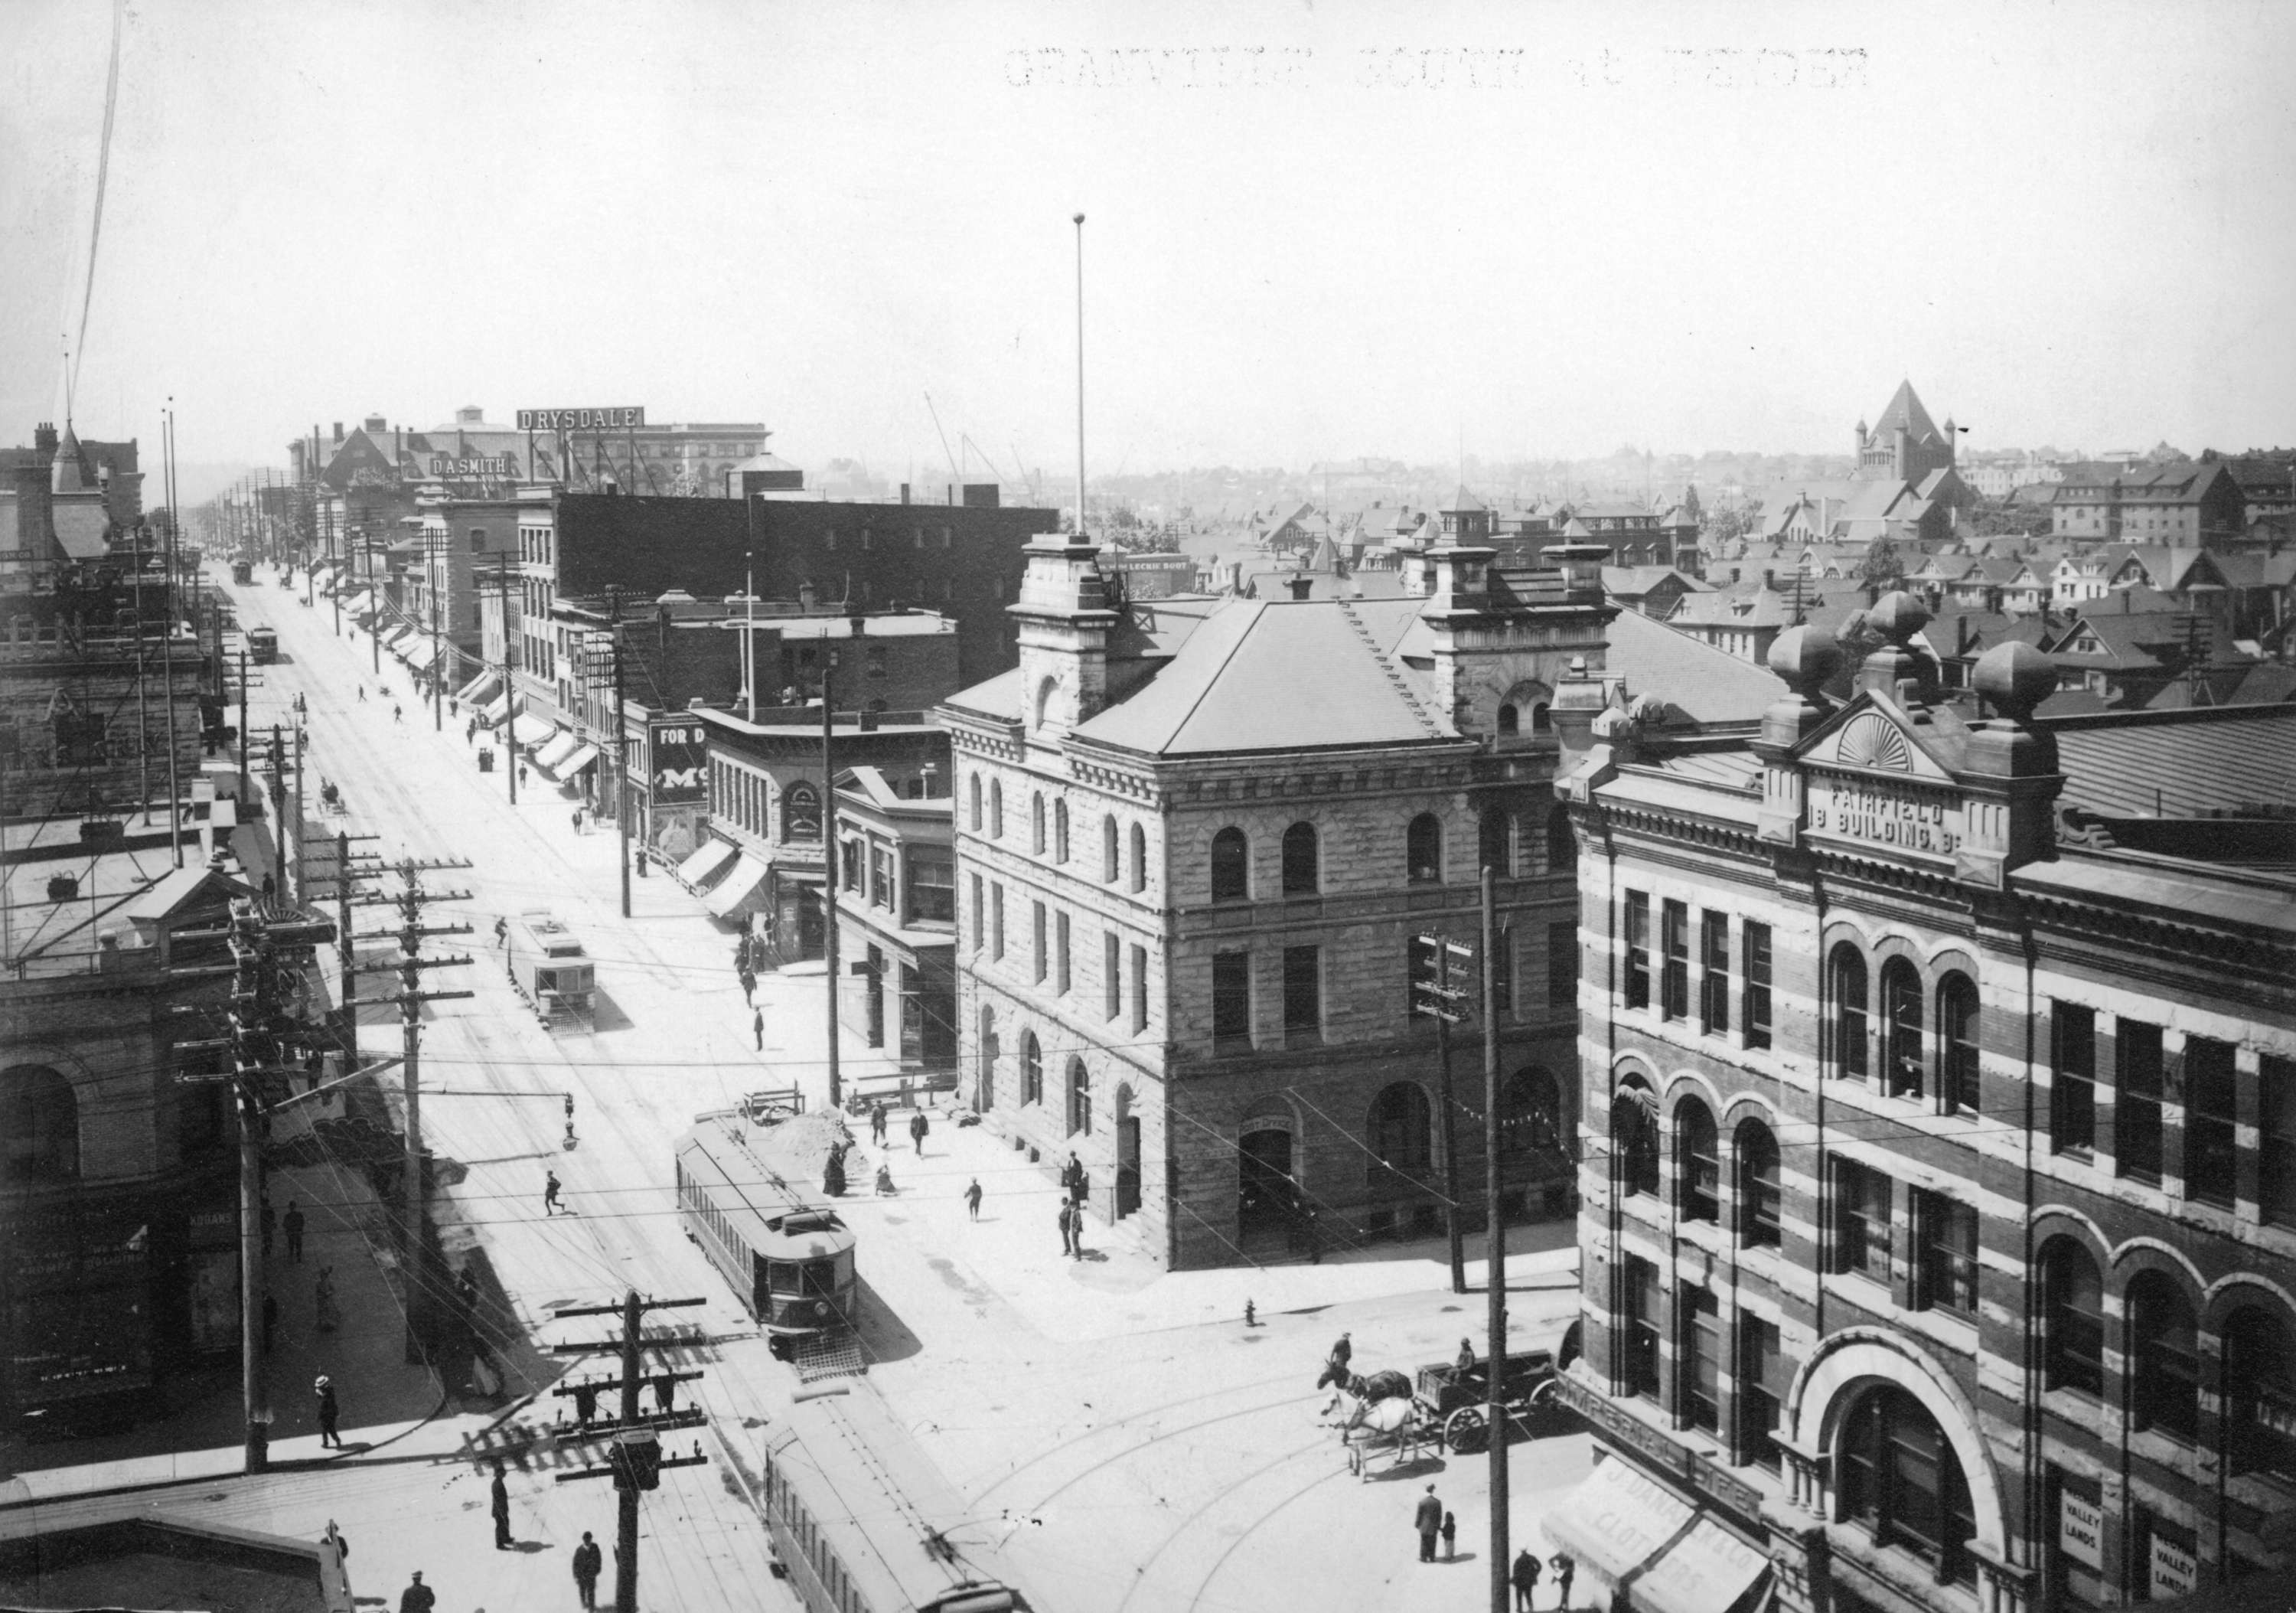 Granville Street south of Pender Street showing Post fice and